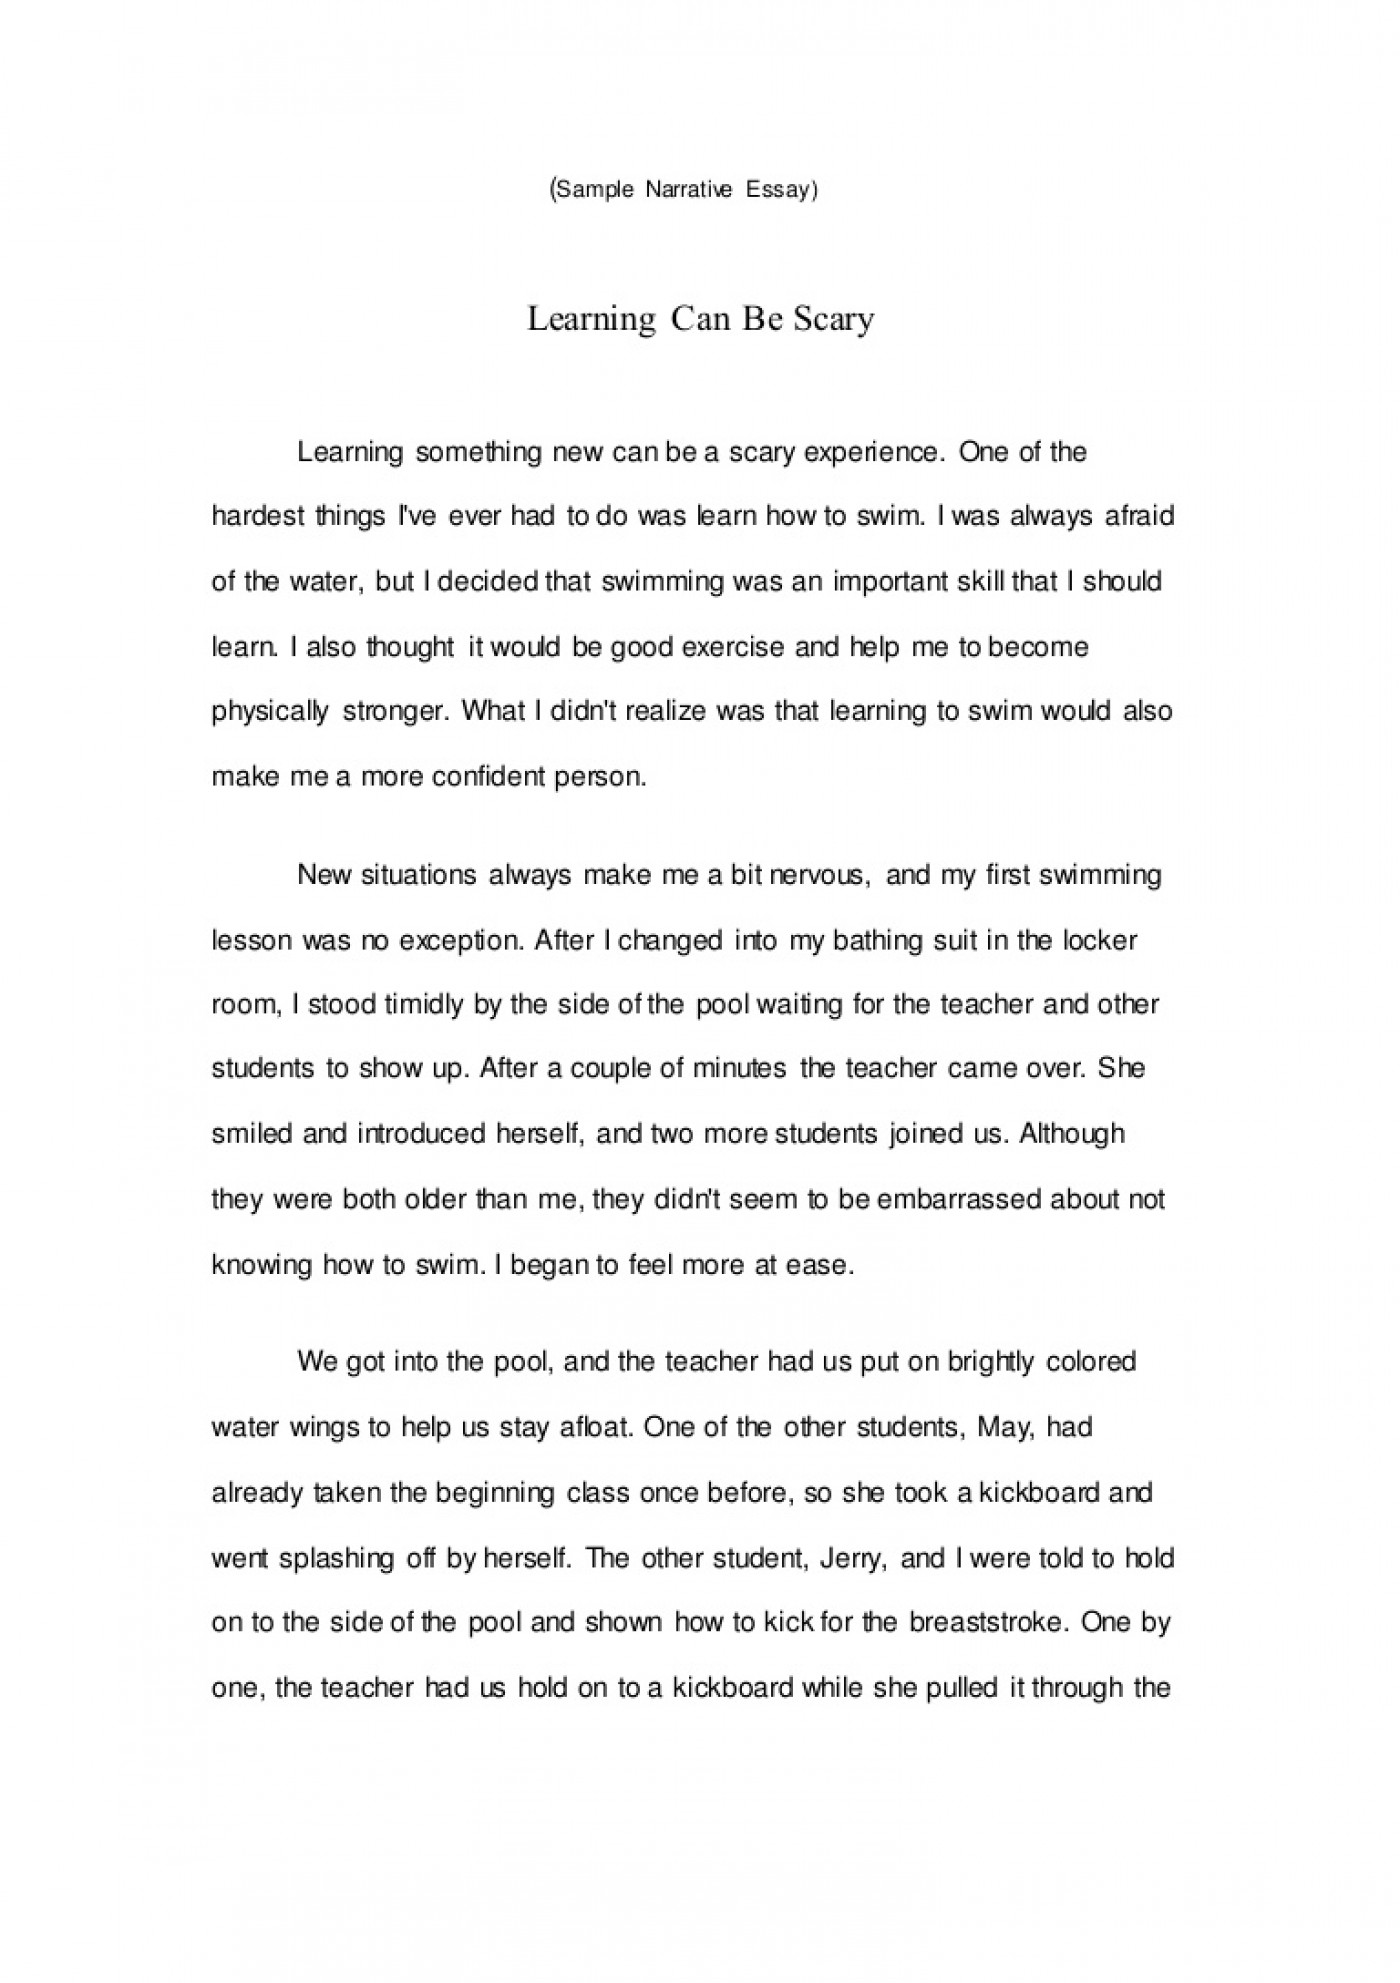 017 Essay Example Samplenarrativeessay Lva1 App6891 Thumbnail Writing Amazing A Narrative About Being Judged Quizlet Powerpoint 1400